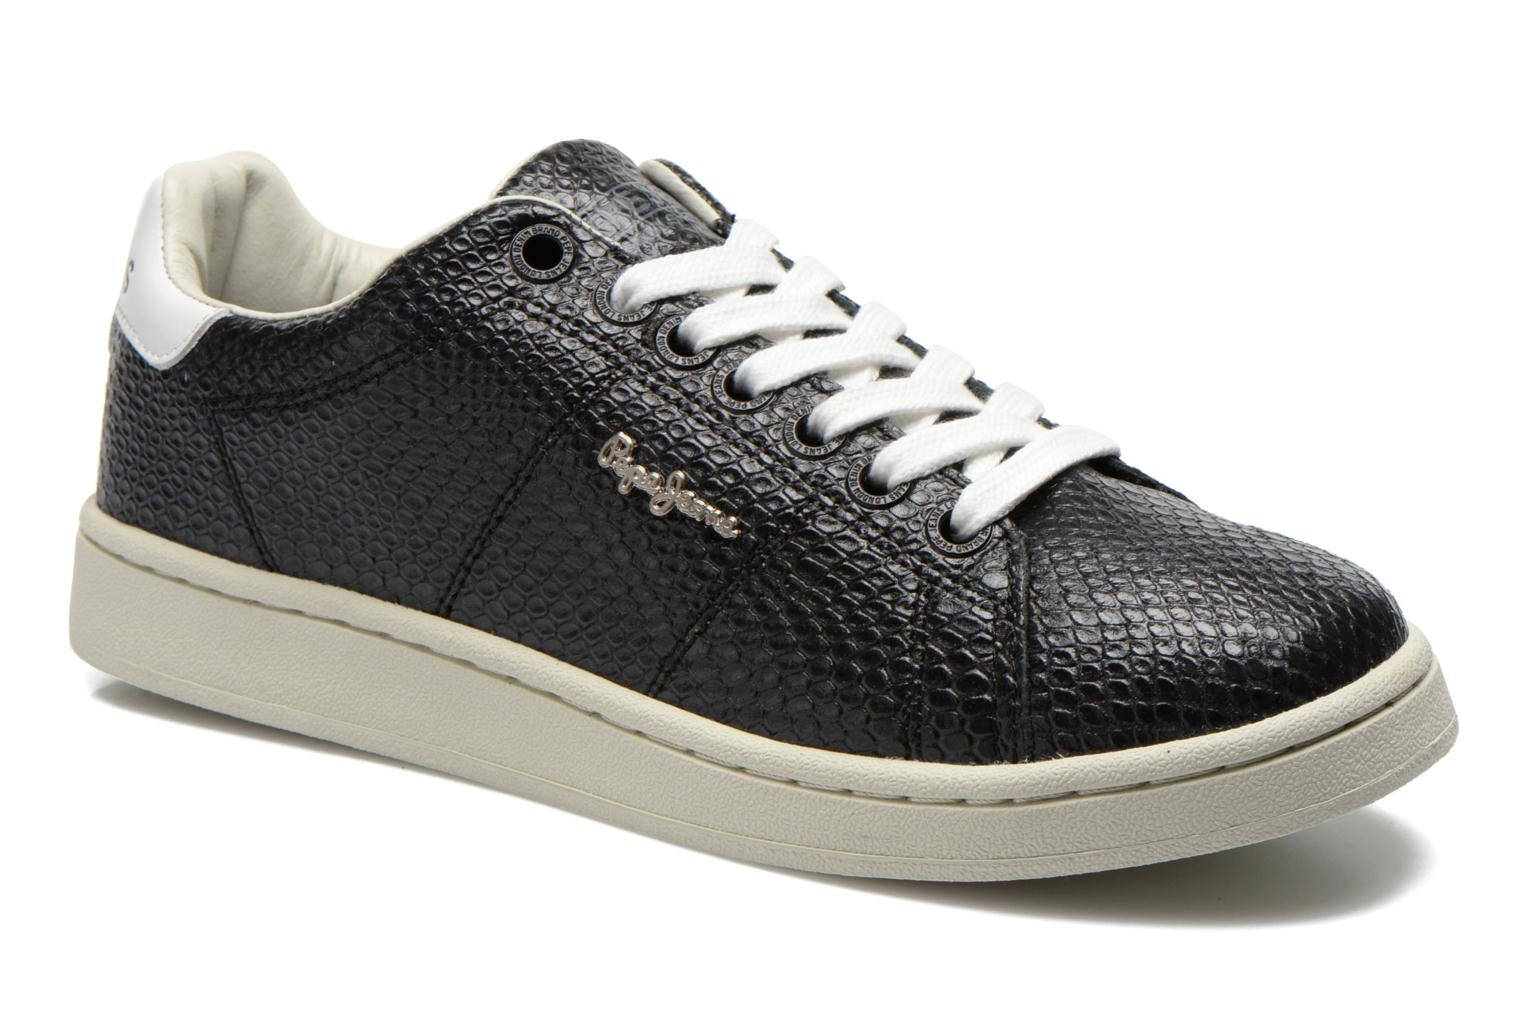 Sneakers Club by Pepe jeans